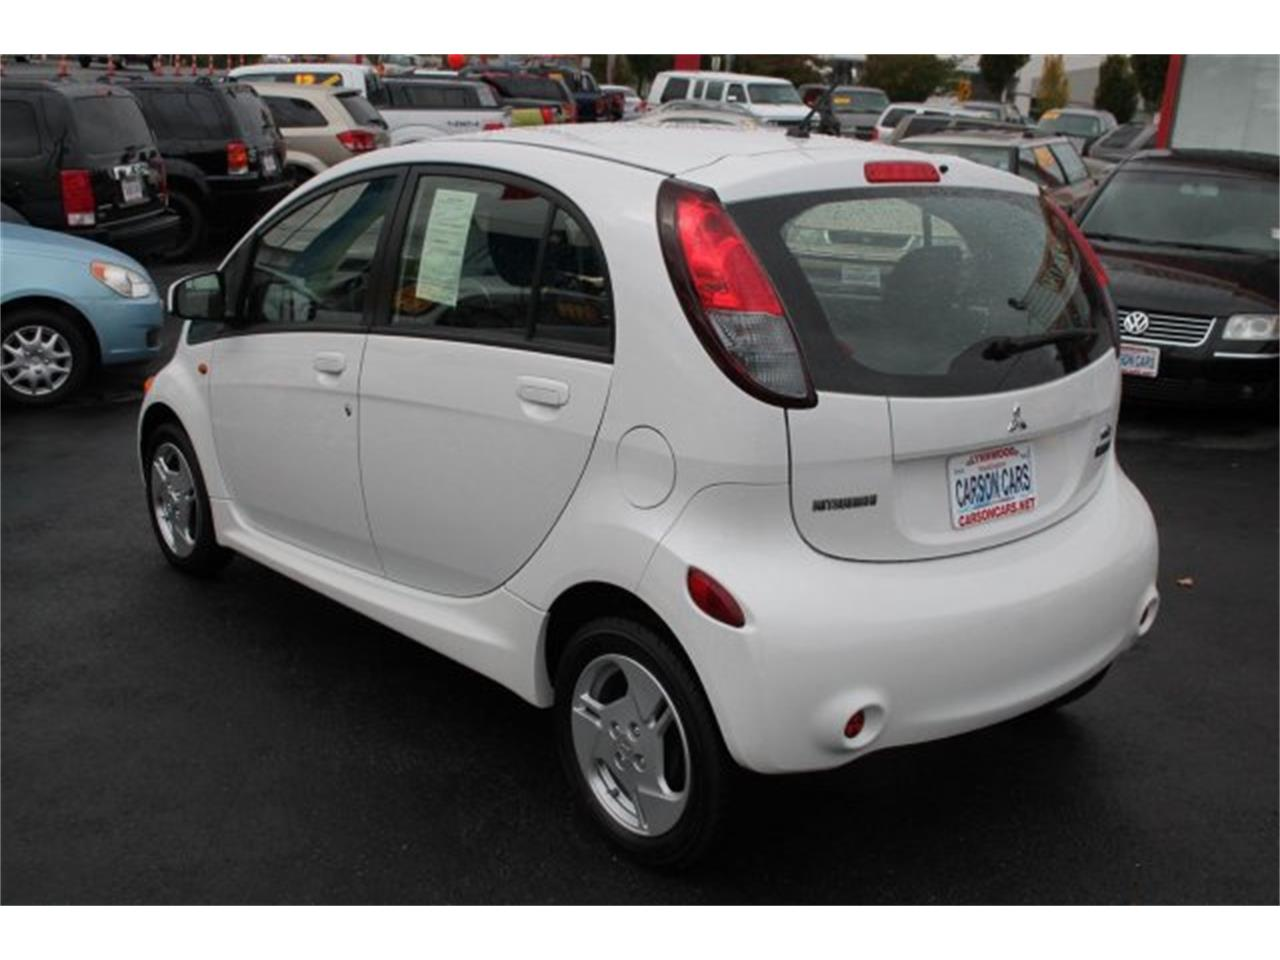 Large Picture of '14 i-MiEV located in Lynnwood Washington - $9,995.00 - JJJG